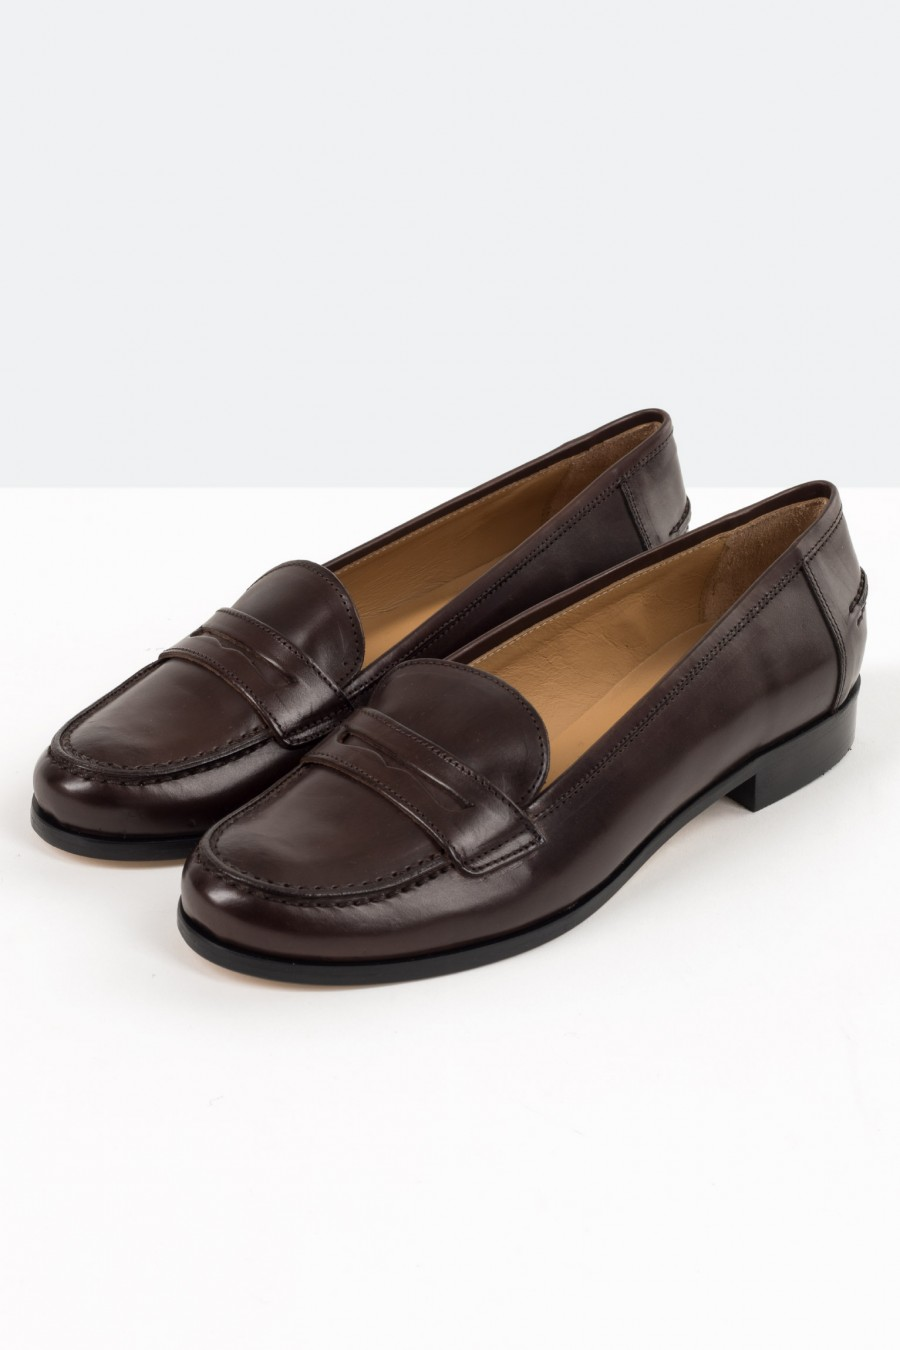 Traditional black leather flats